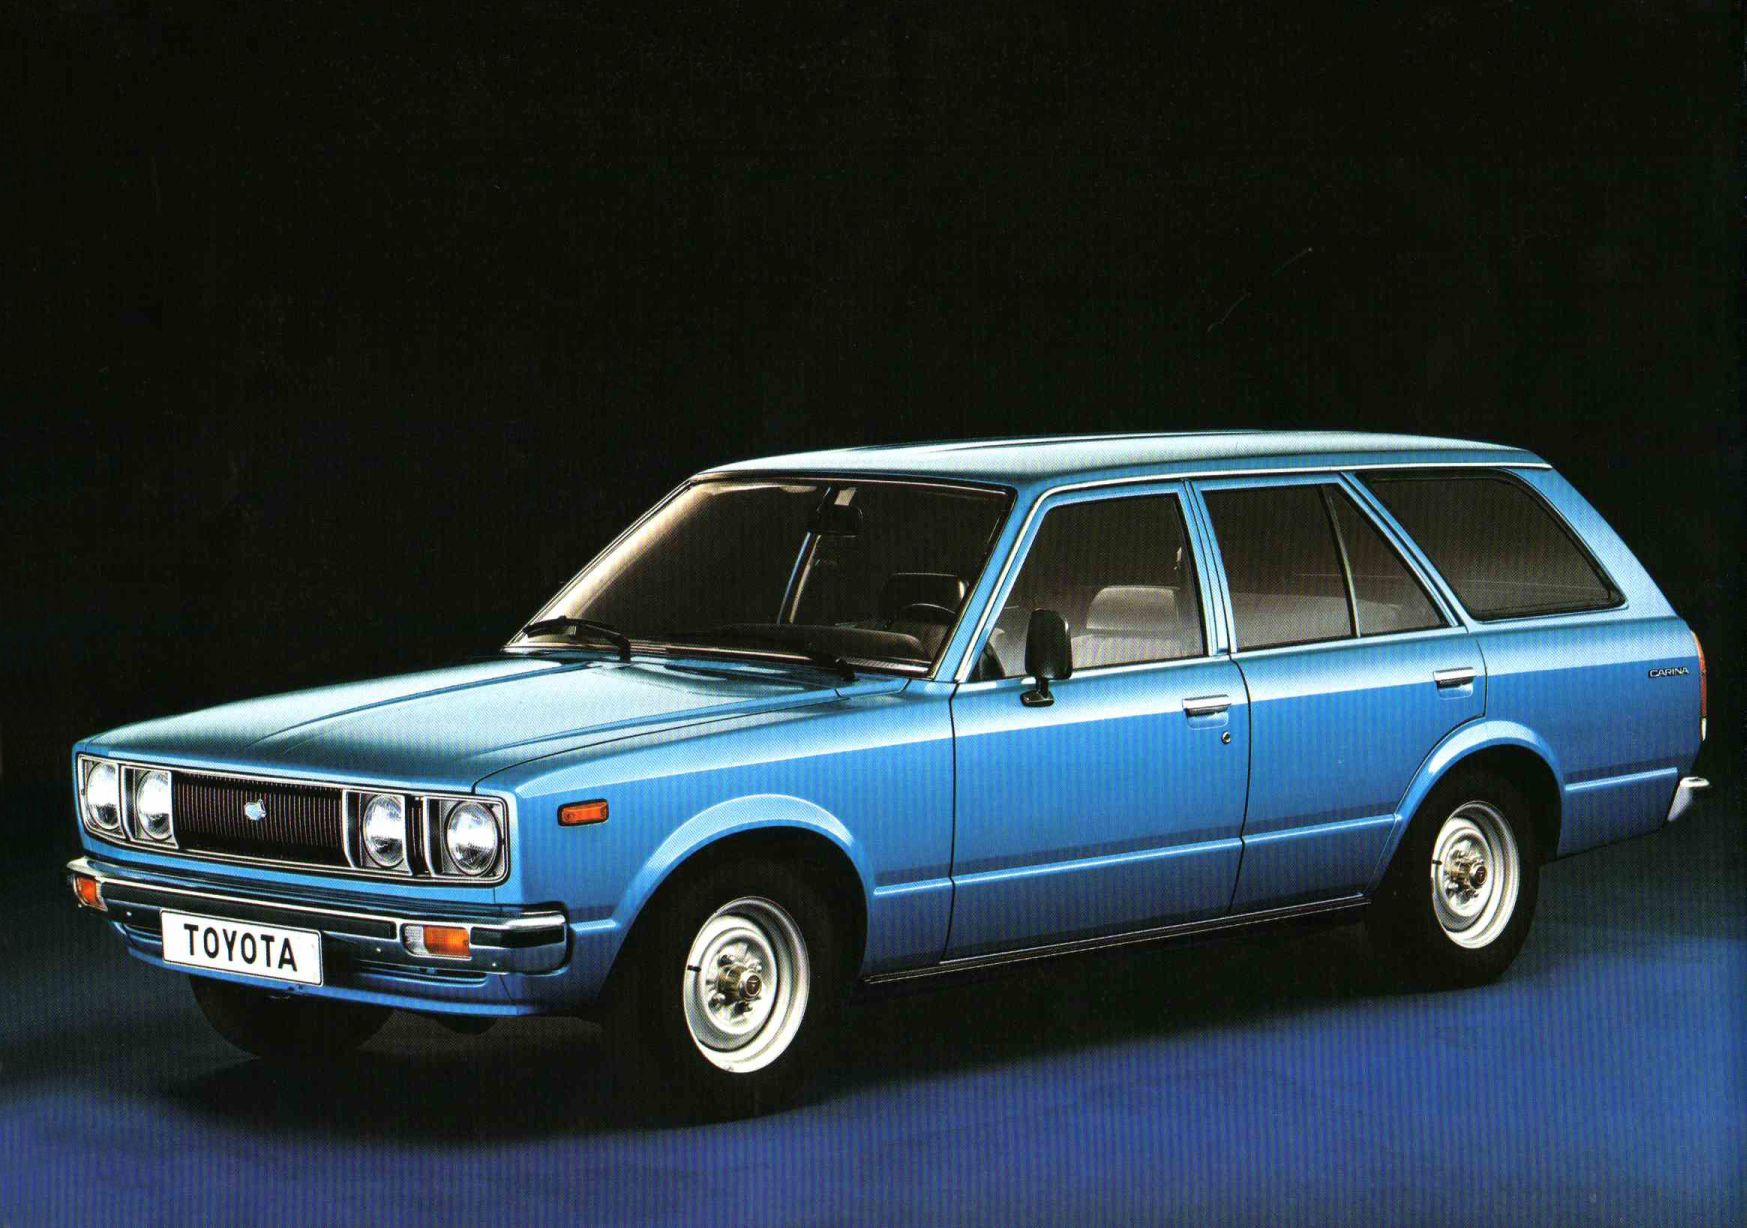 Toyota Carina 1977 photo - 6